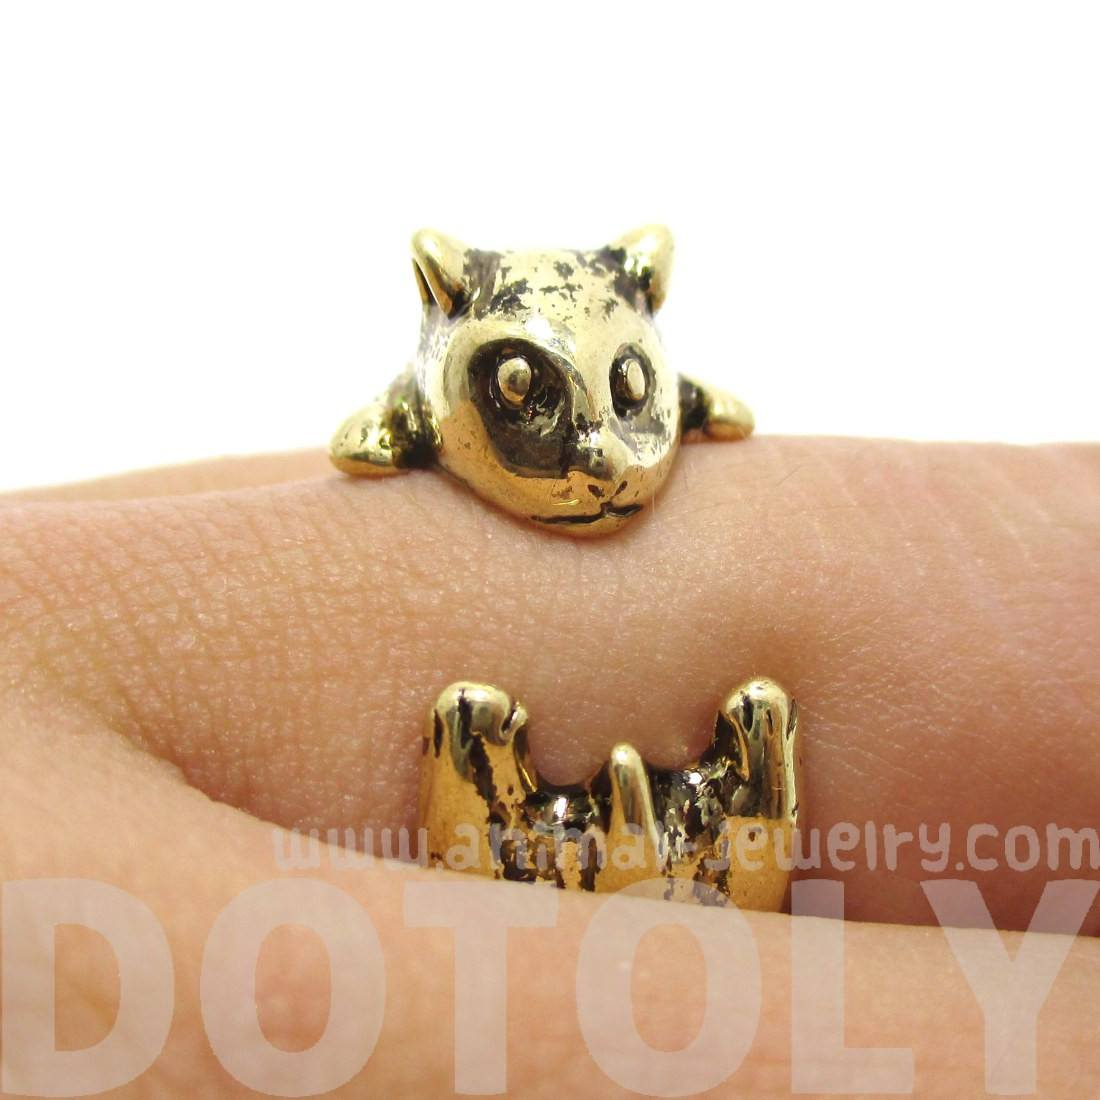 3D Hamster Guinea Pig Shaped Animal Ring in Shiny Gold